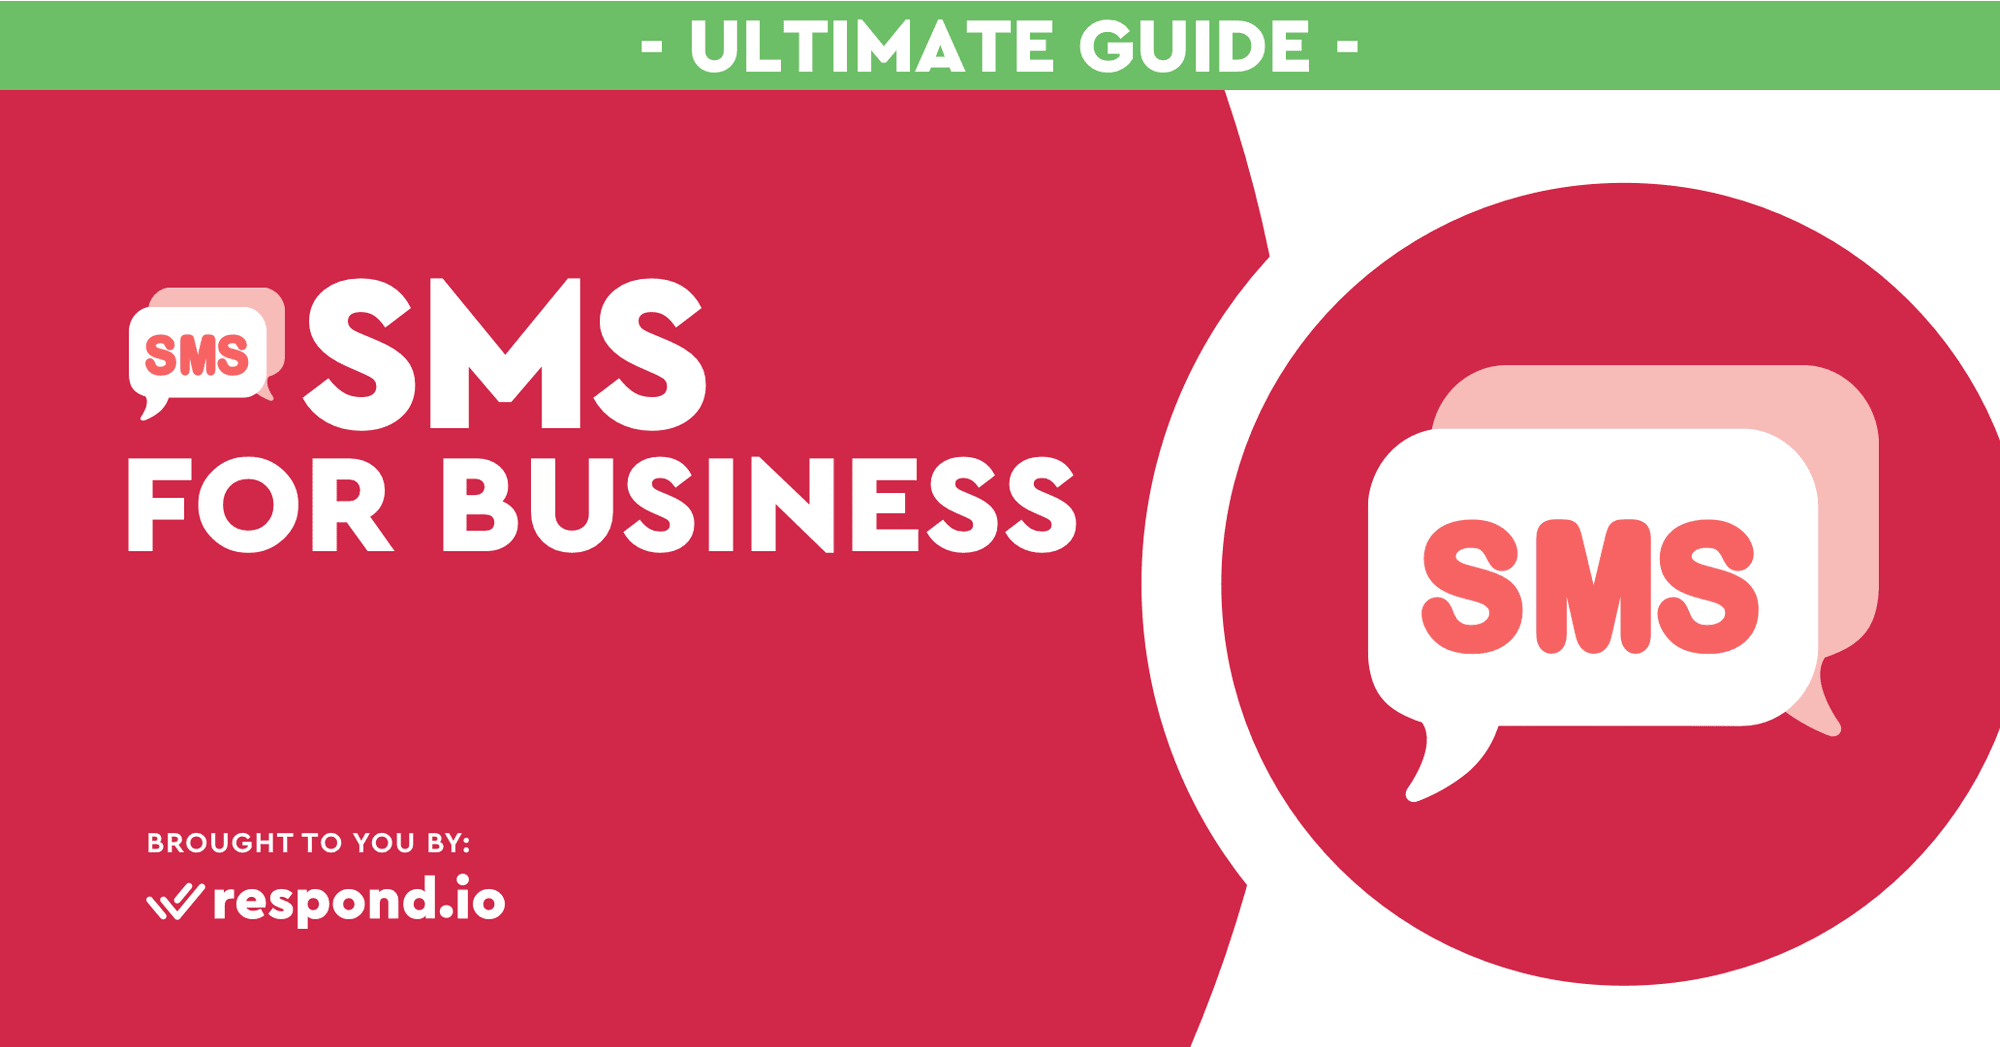 Business SMS: The Ultimate Guide (Sept 2020)